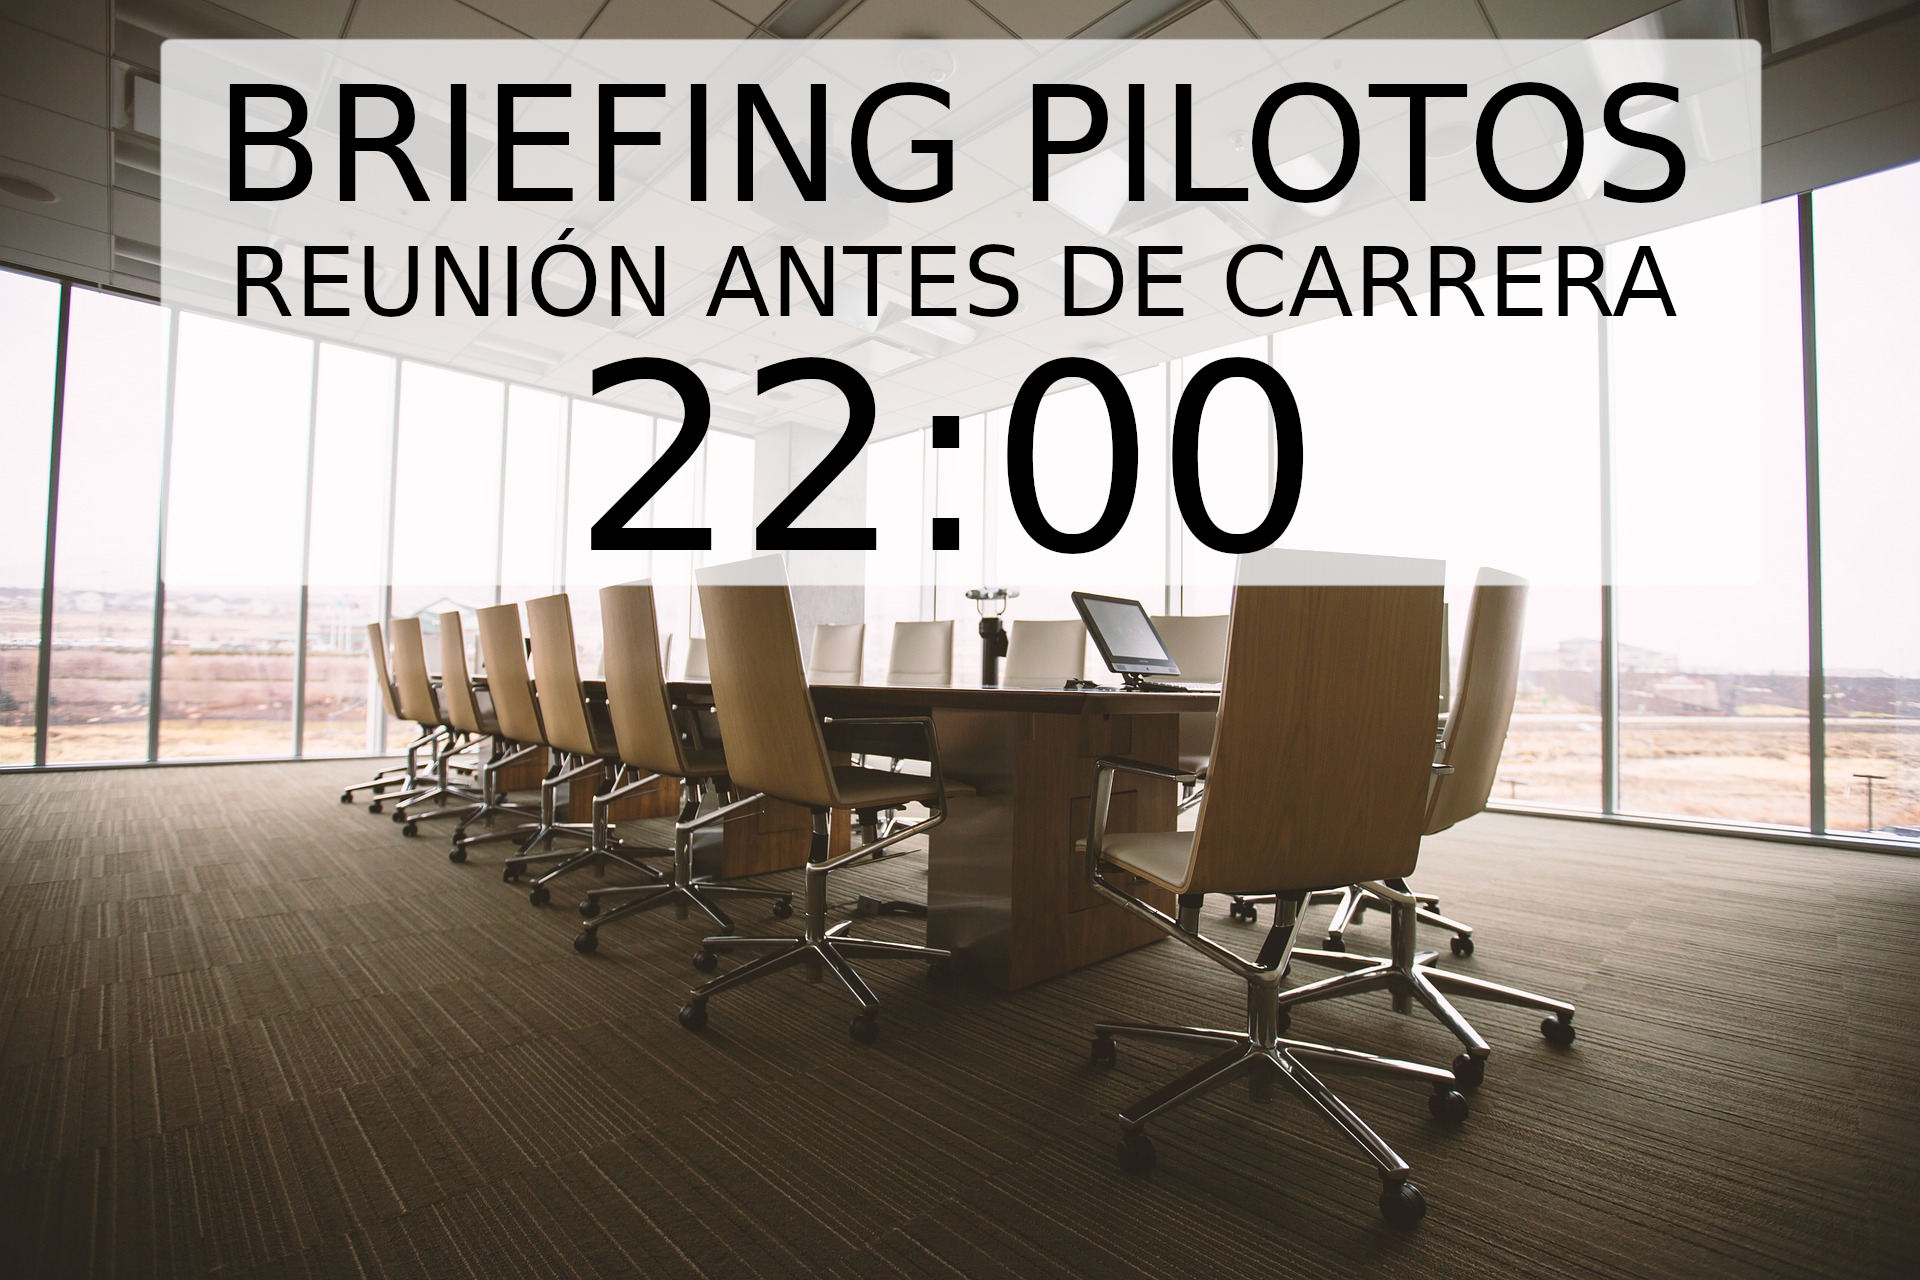 briefing pilotos